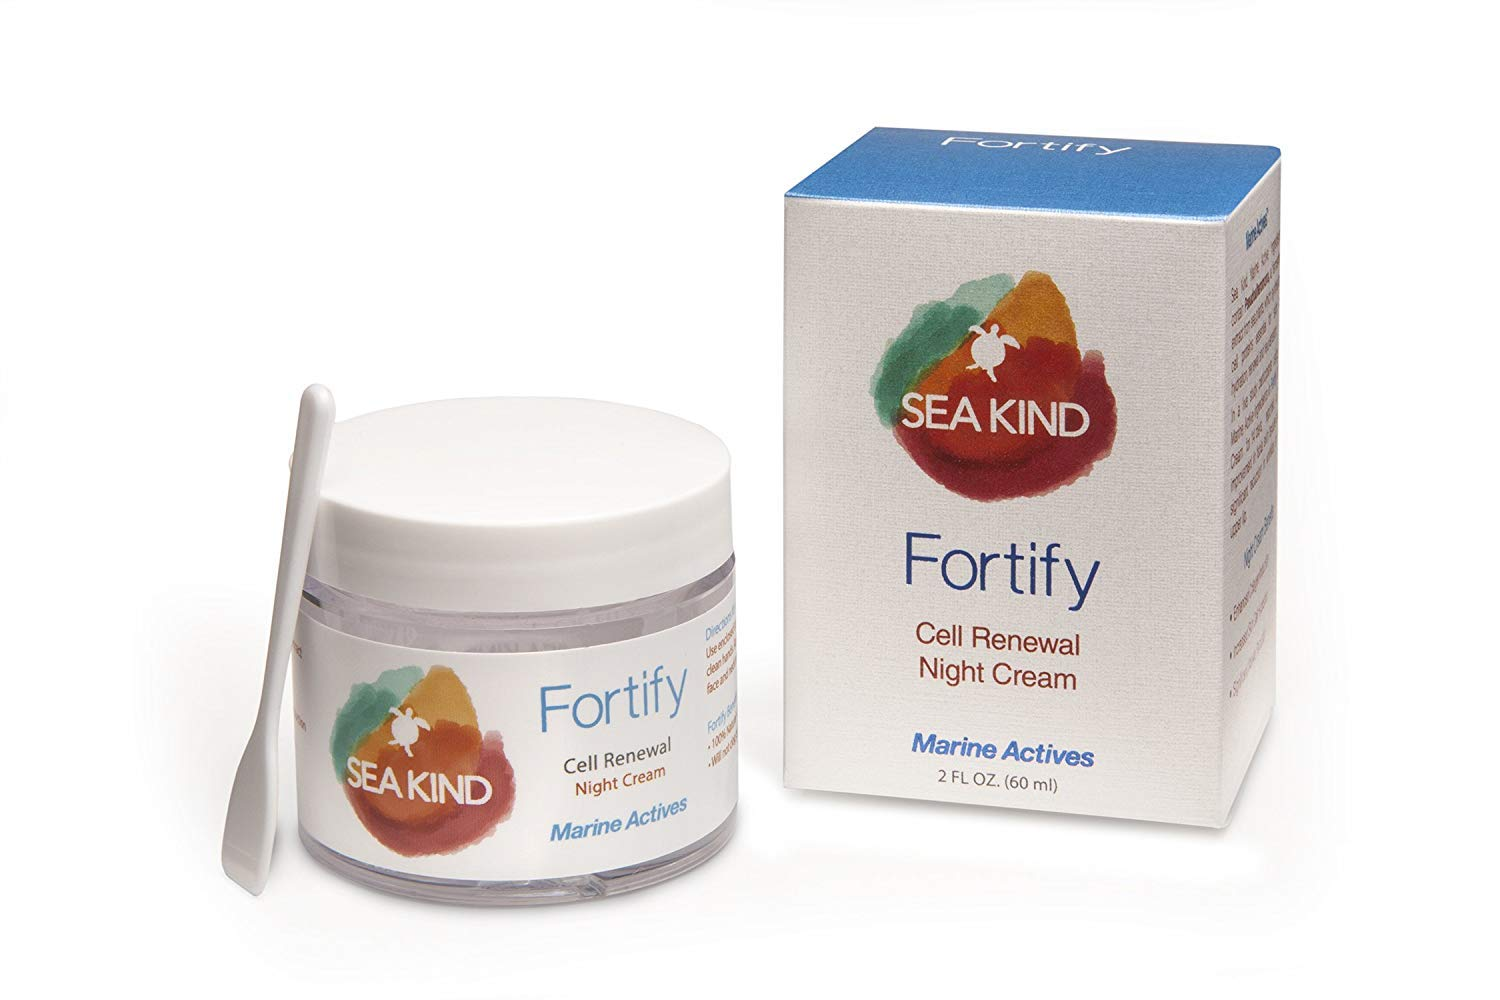 Fortify Cell Renewal Night Cream